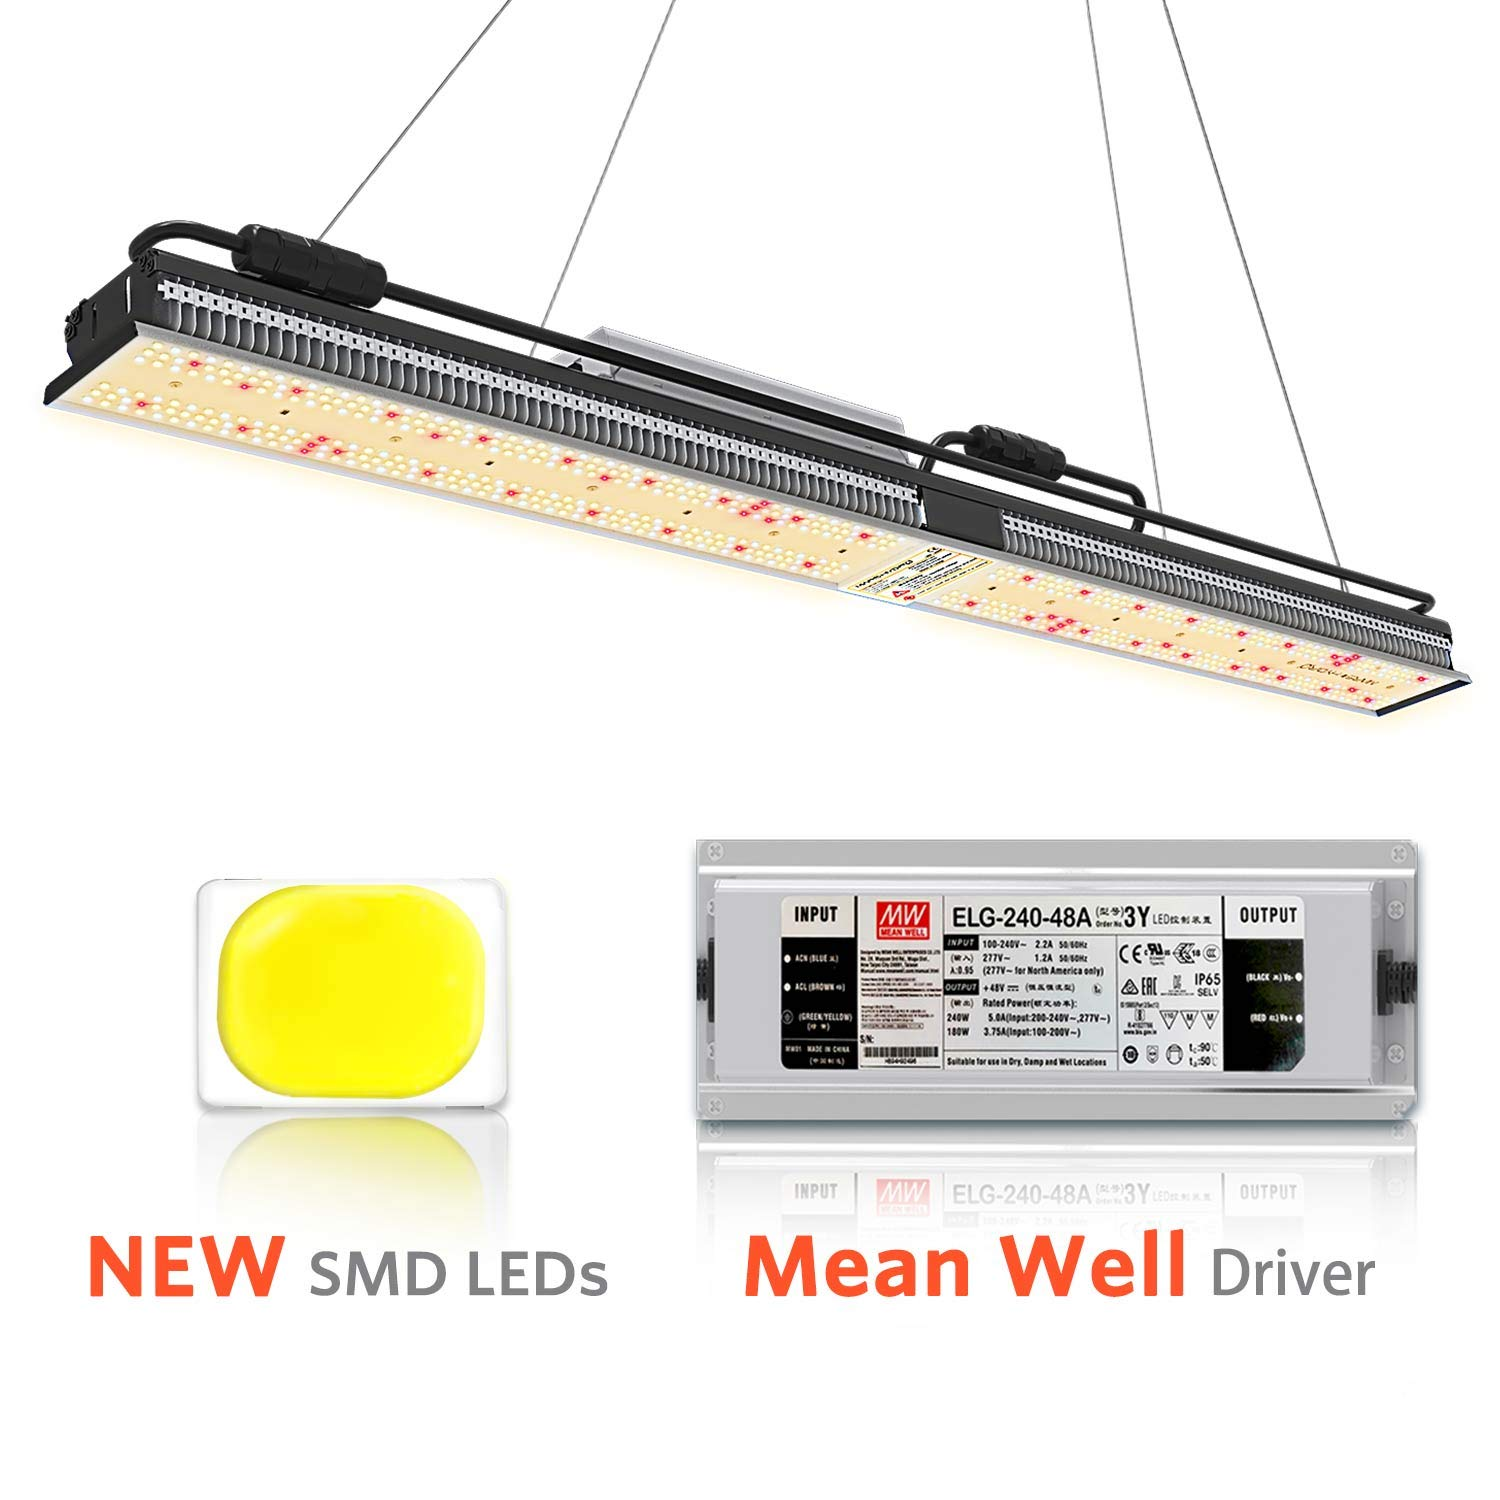 MARS HYDRO SP 250 Led Grow Lights Full Spectrum for Indoor Plants Veg and Flower Hydroponic Greenhouse Water Proof Dimmable Commercial LED Growing Lamps 2x4ft Two for 4x4ft Coverage by MARS HYDRO